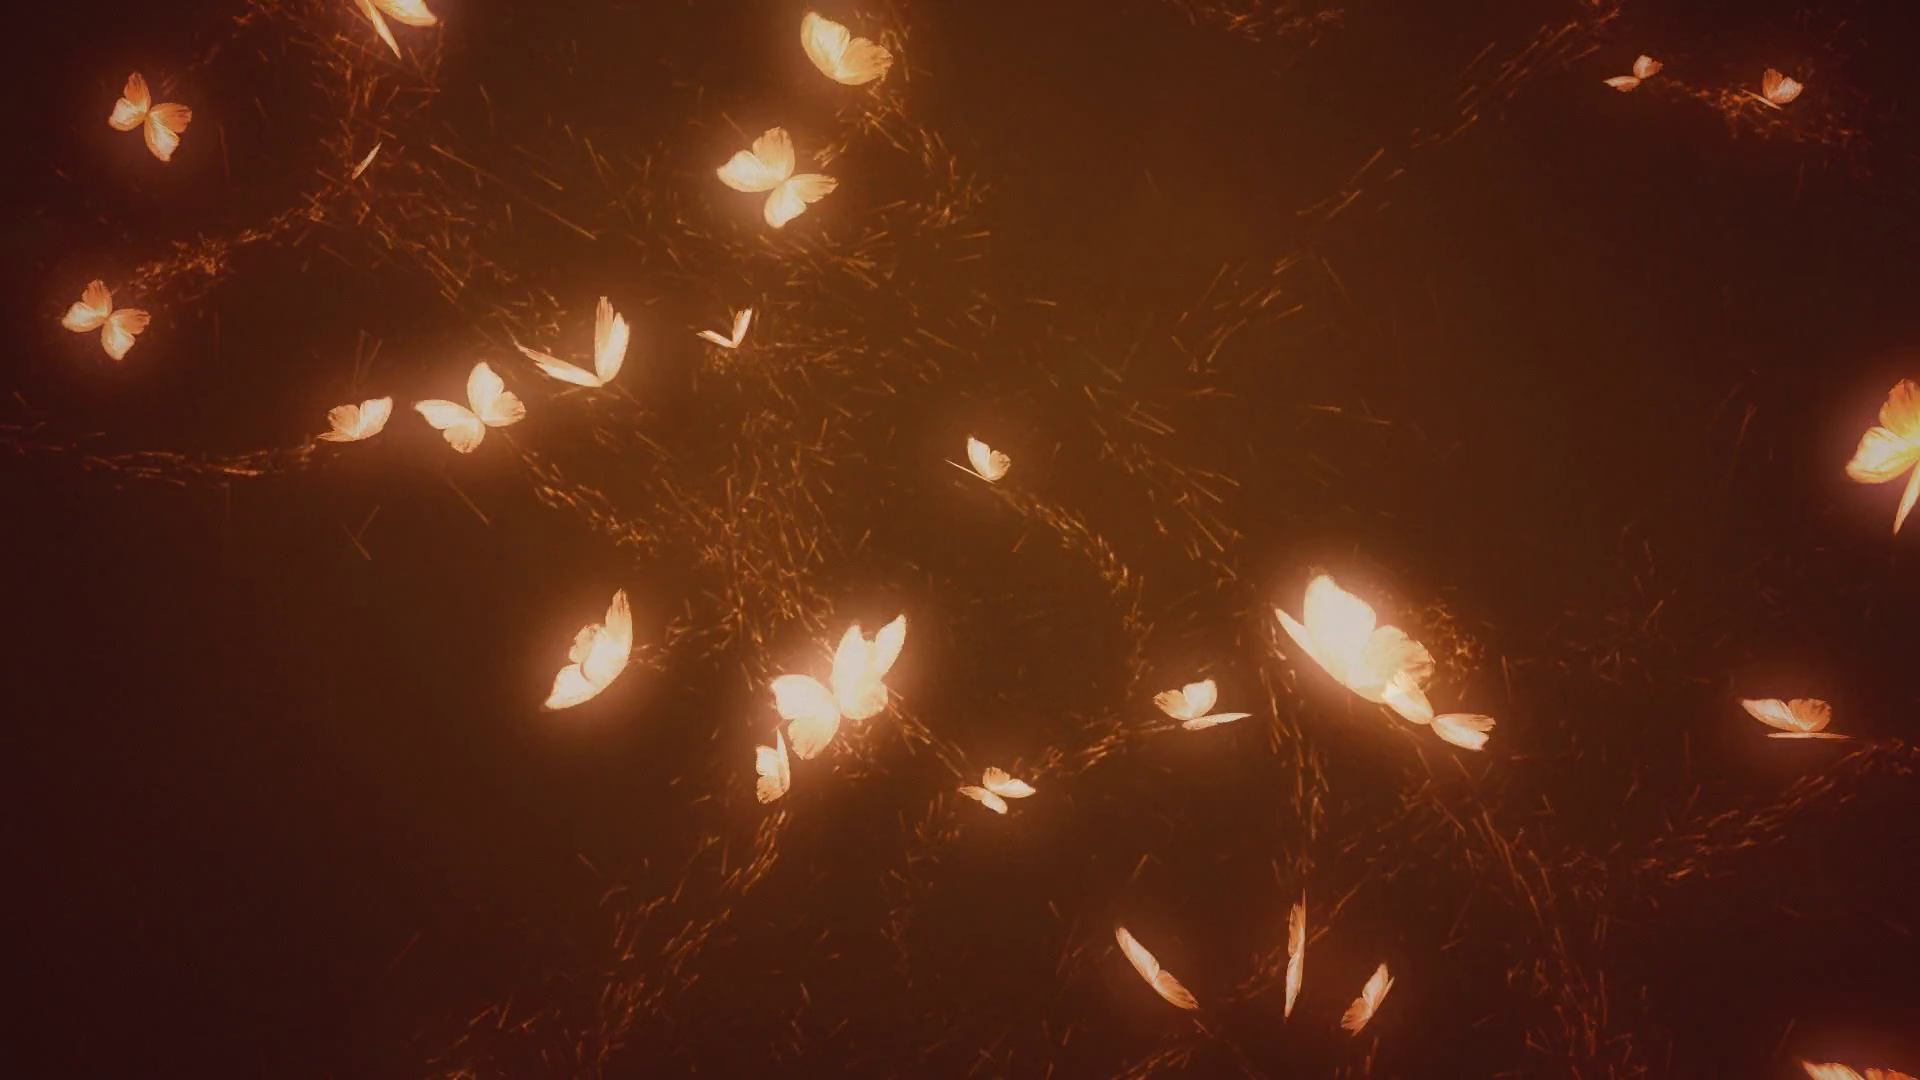 Magical glowing butterflies. Warm color. Loop. Stock Video Footage.